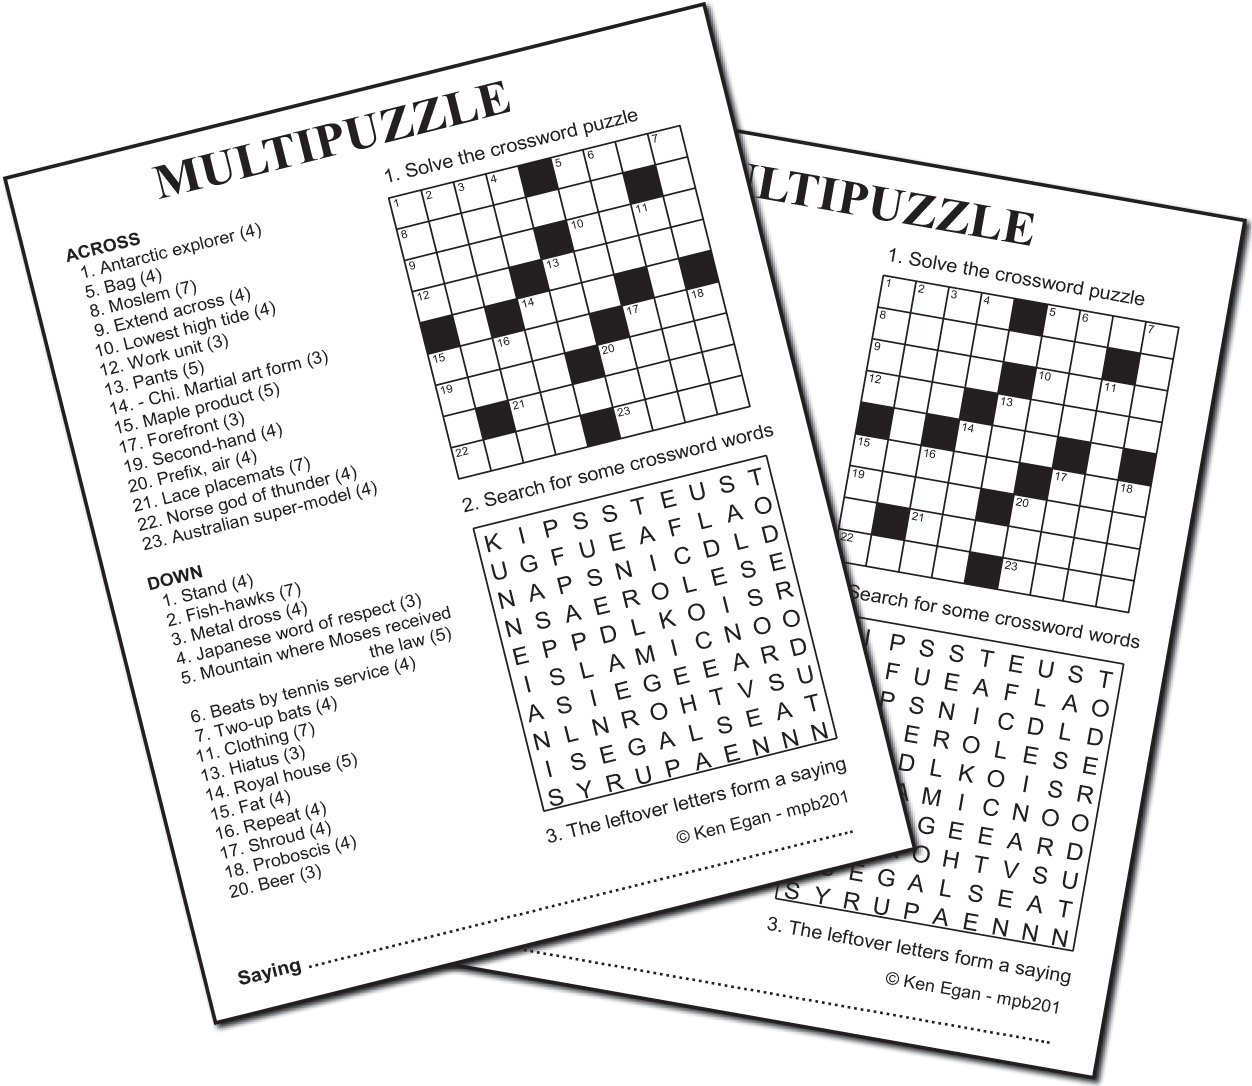 Thumbnail for 20 MULTIPUZZLE PUZZLE BOOKLET 01